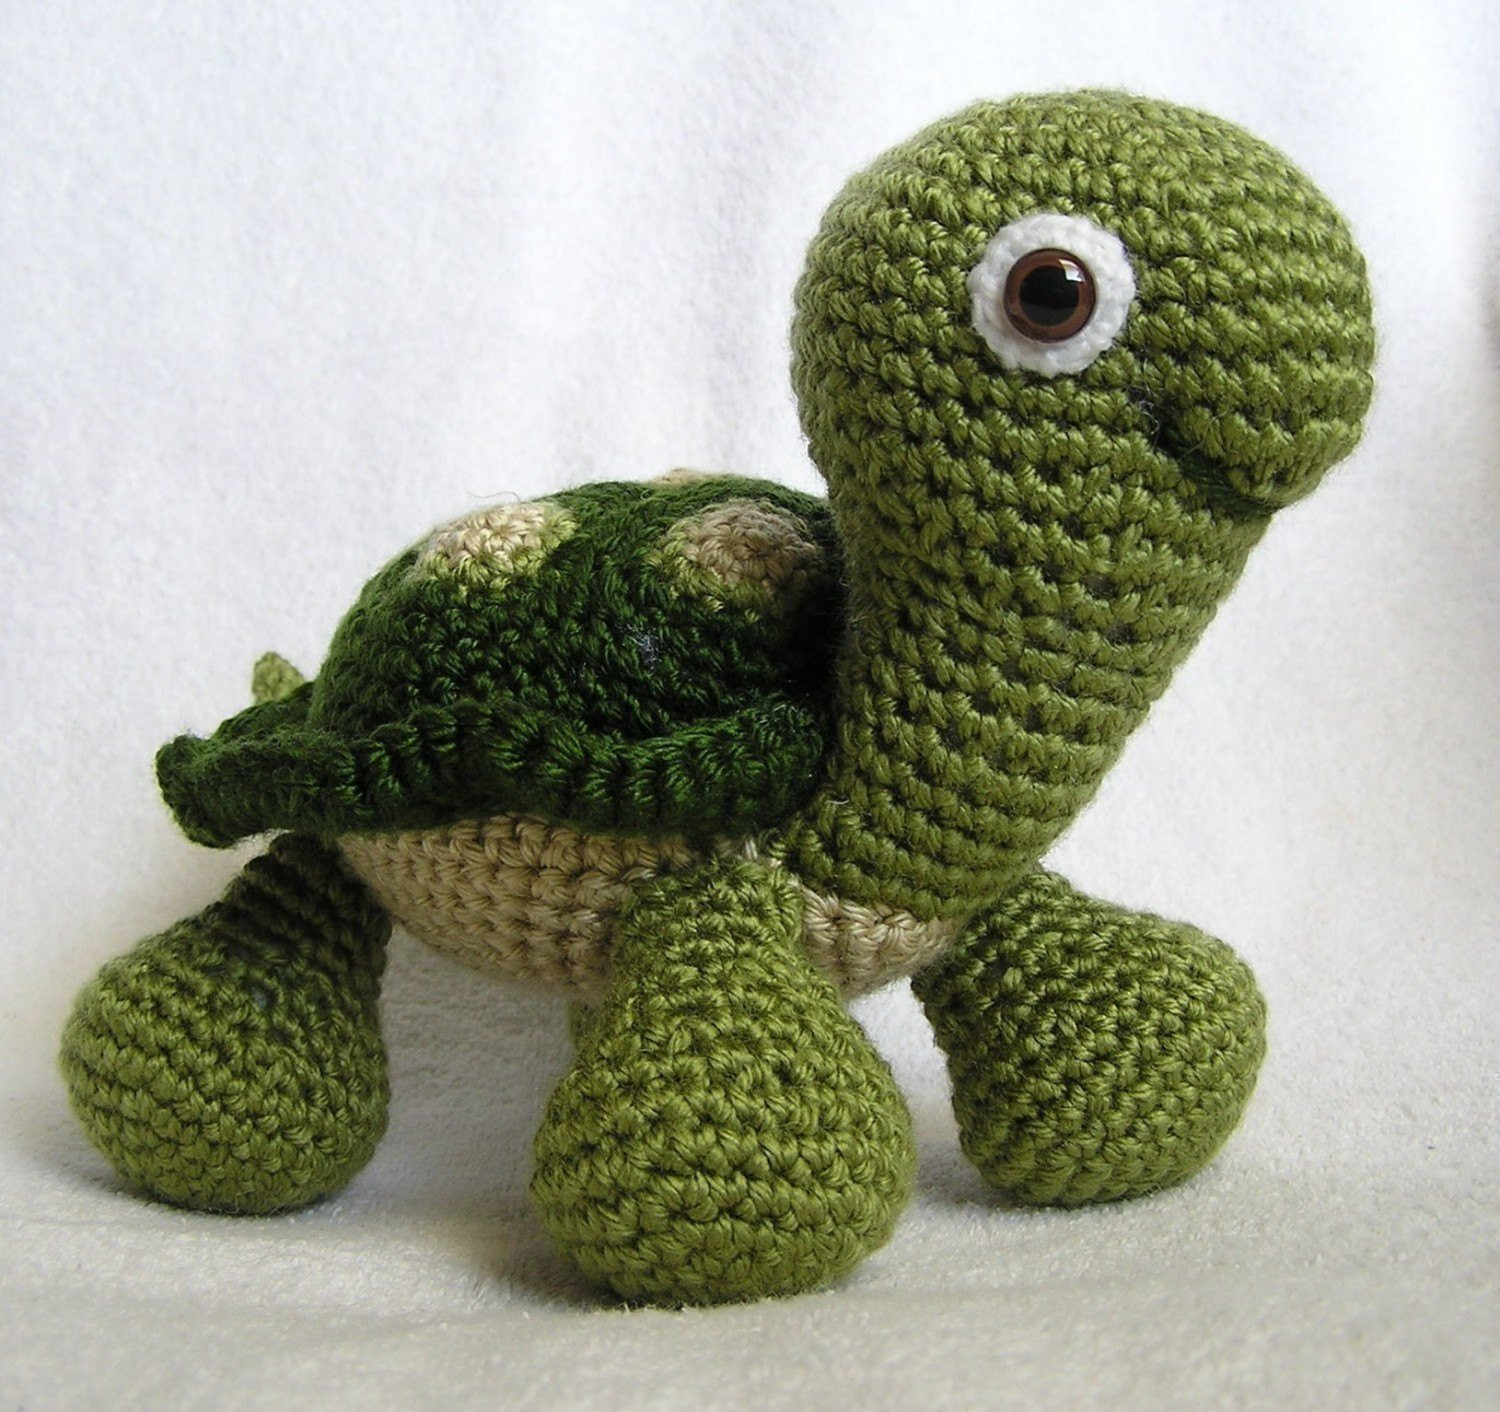 Inspirational Baby Turtle Pdf Crochet Pattern English Only Crochet Turtle Of Innovative 48 Images Crochet Turtle